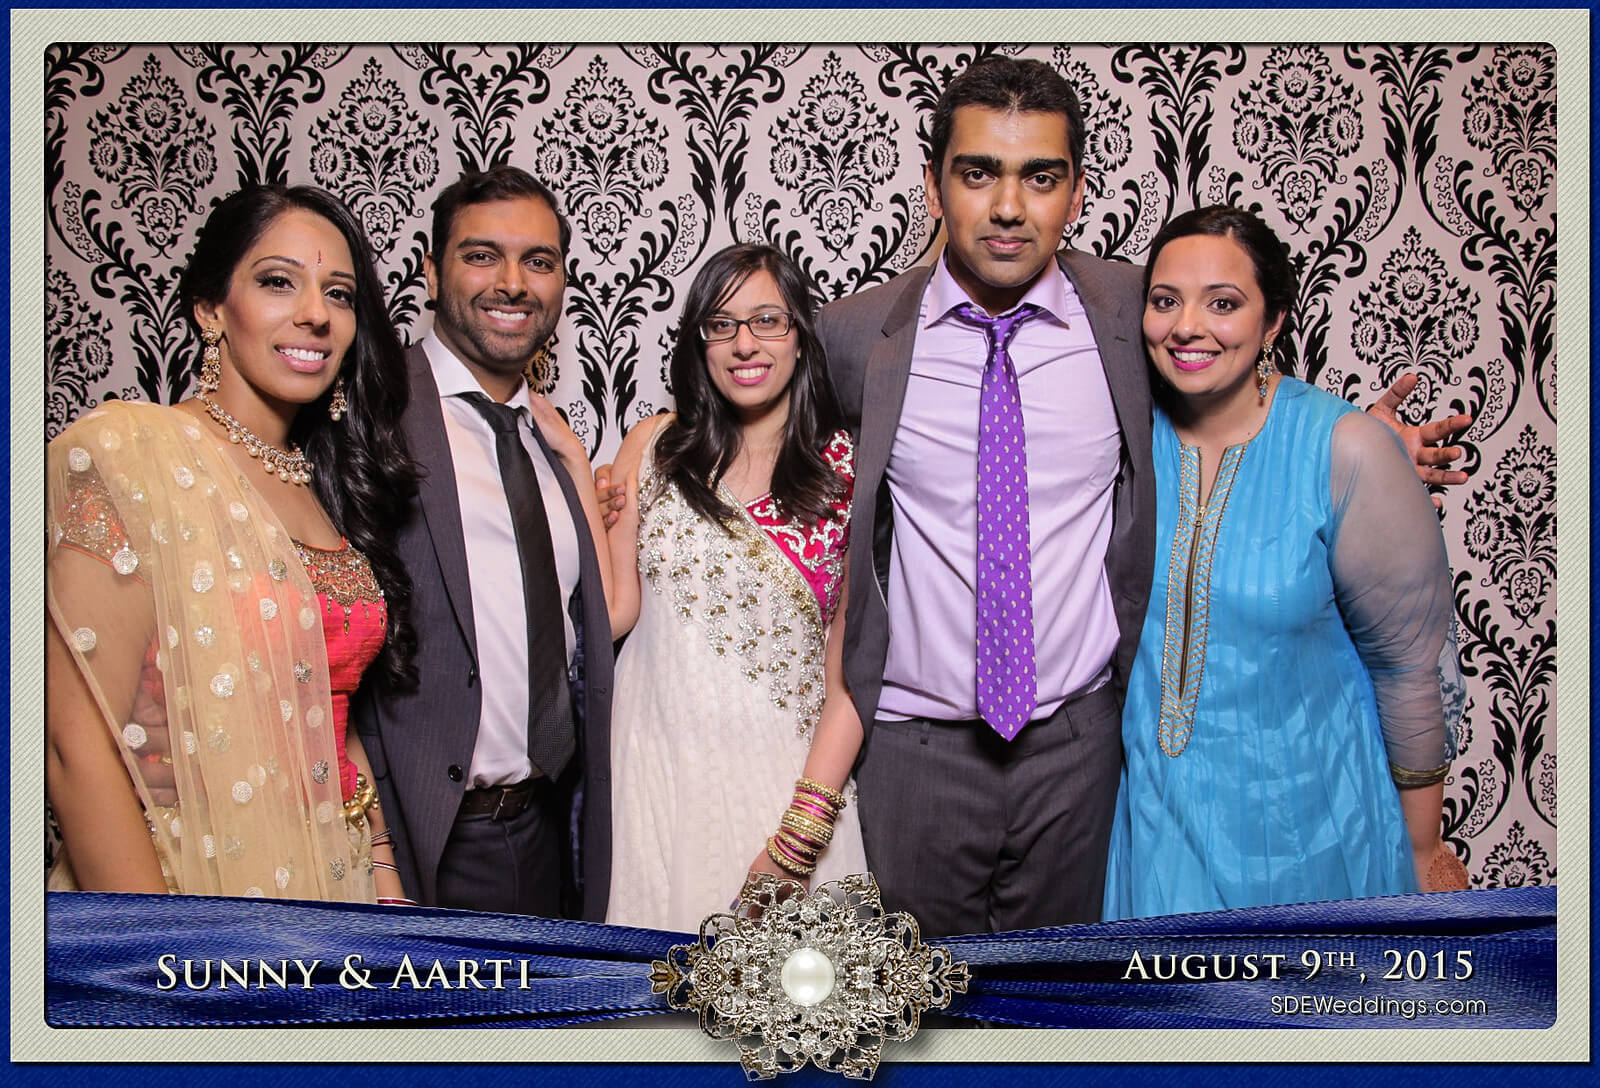 Toronto Brampton Pearson Convention Centre Wedding Photo Booth Rental 6